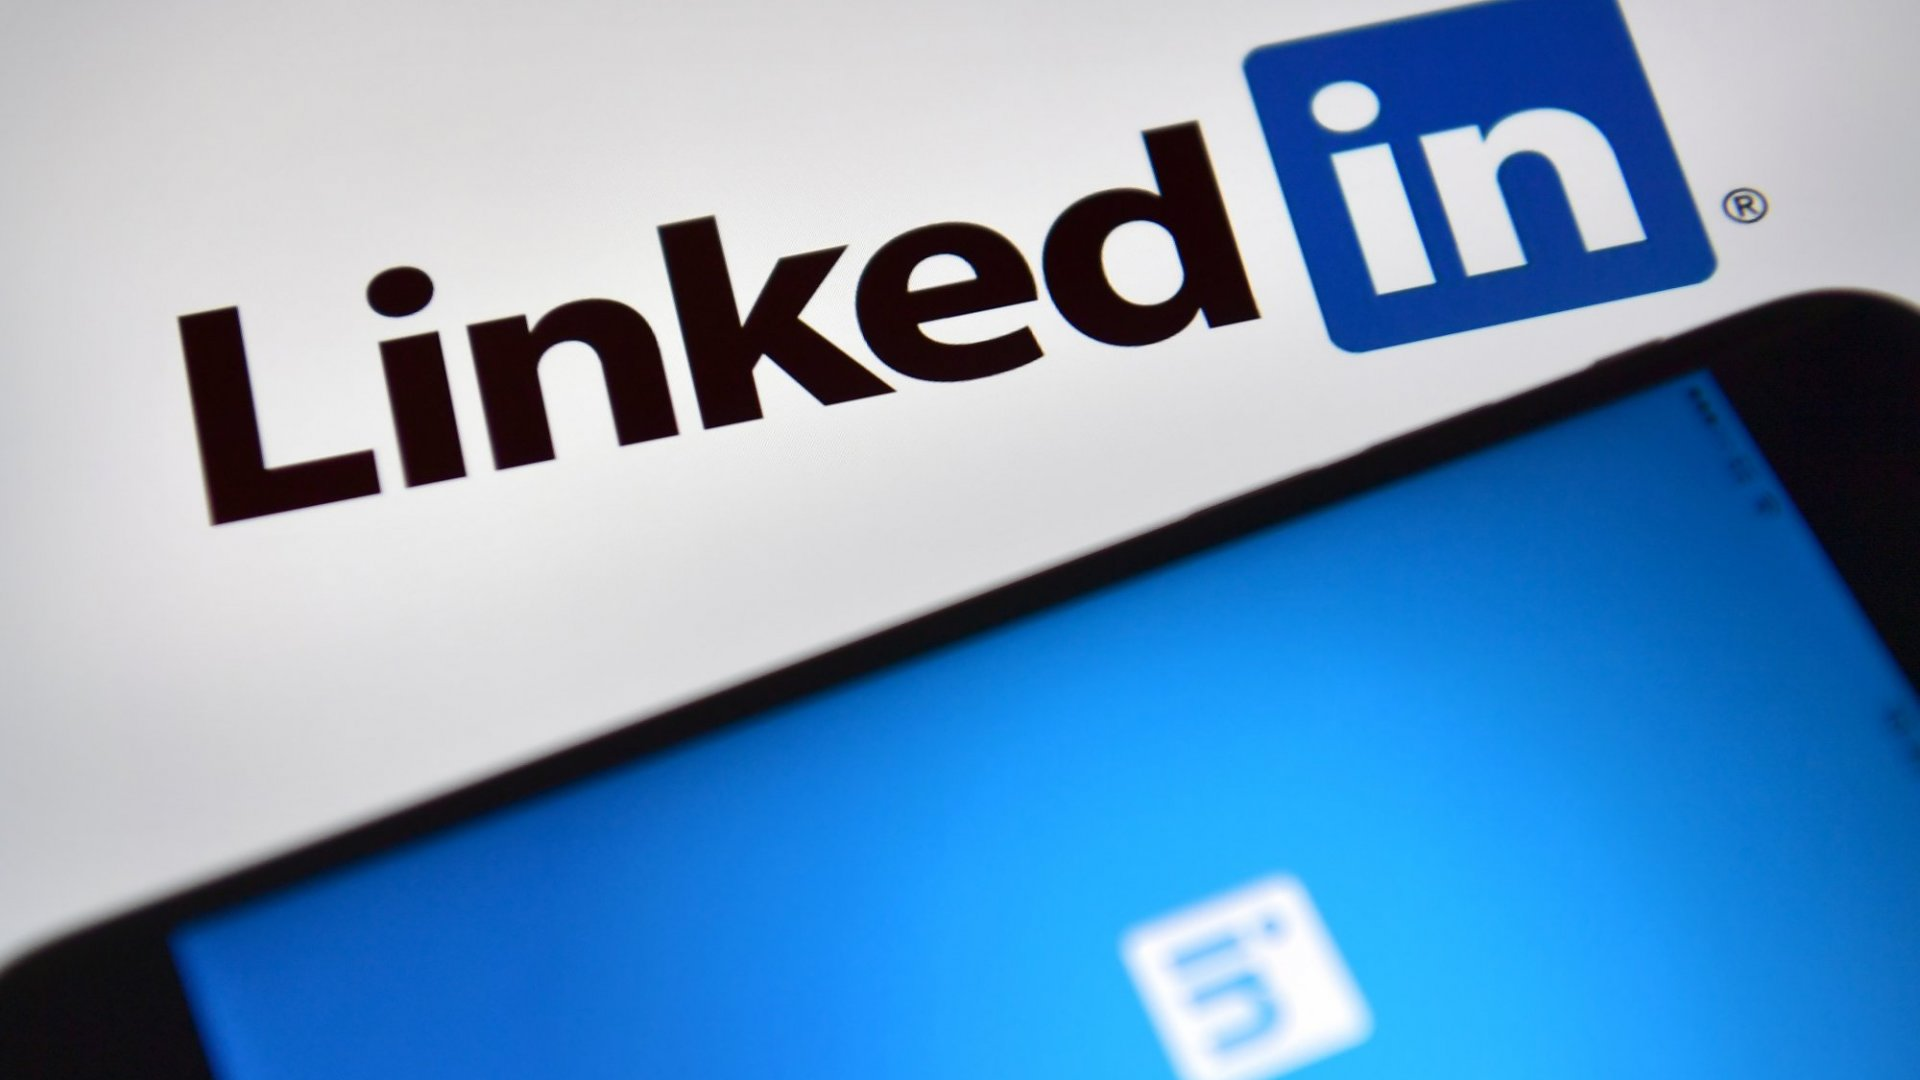 People With 1 Job Skill on Their LinkedIn Profile Get Hired at Faster Rates